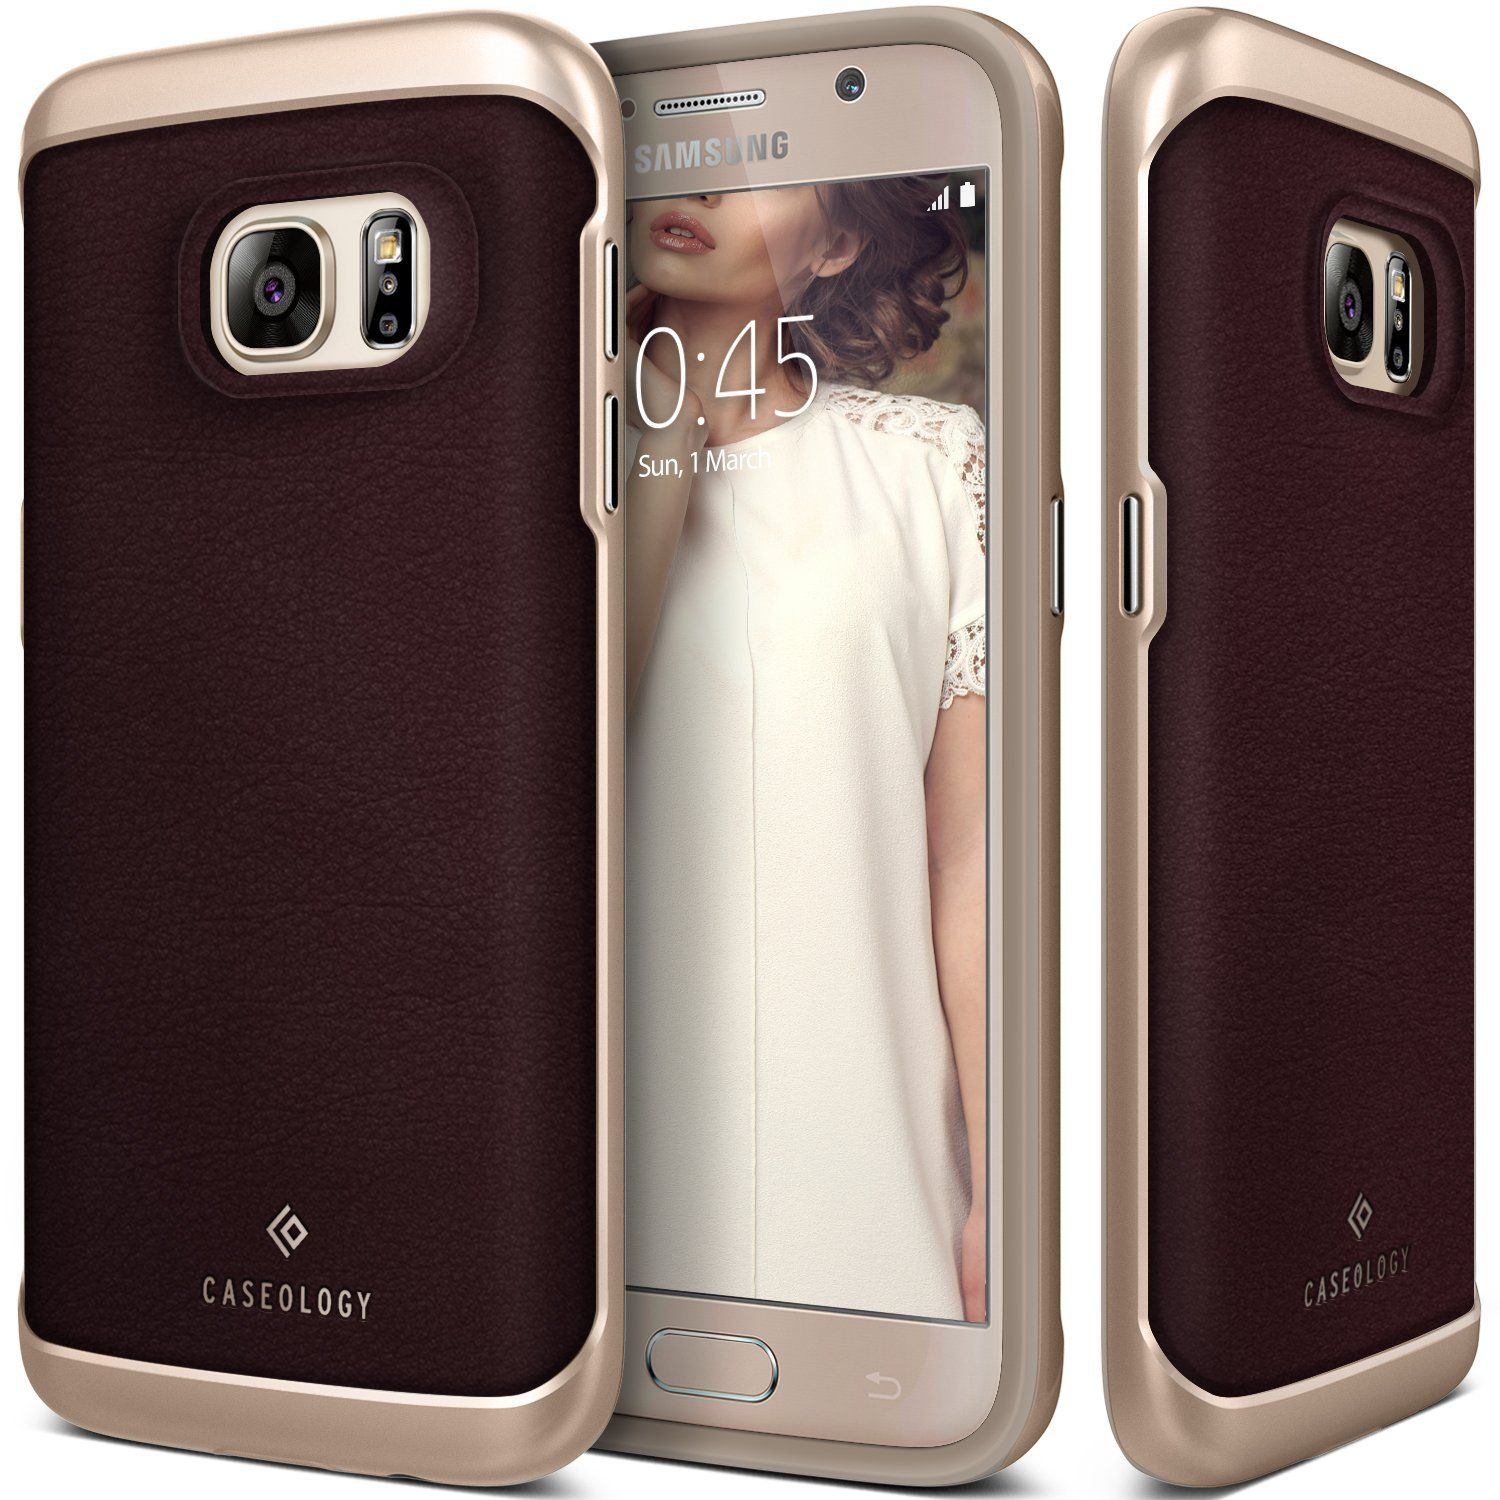 Featured Top 10 Best Cases For Samsung Galaxy S7 Samsung Galaxy S7 Cases Galaxy S7 Cases Samsung Galaxy S7 Edge